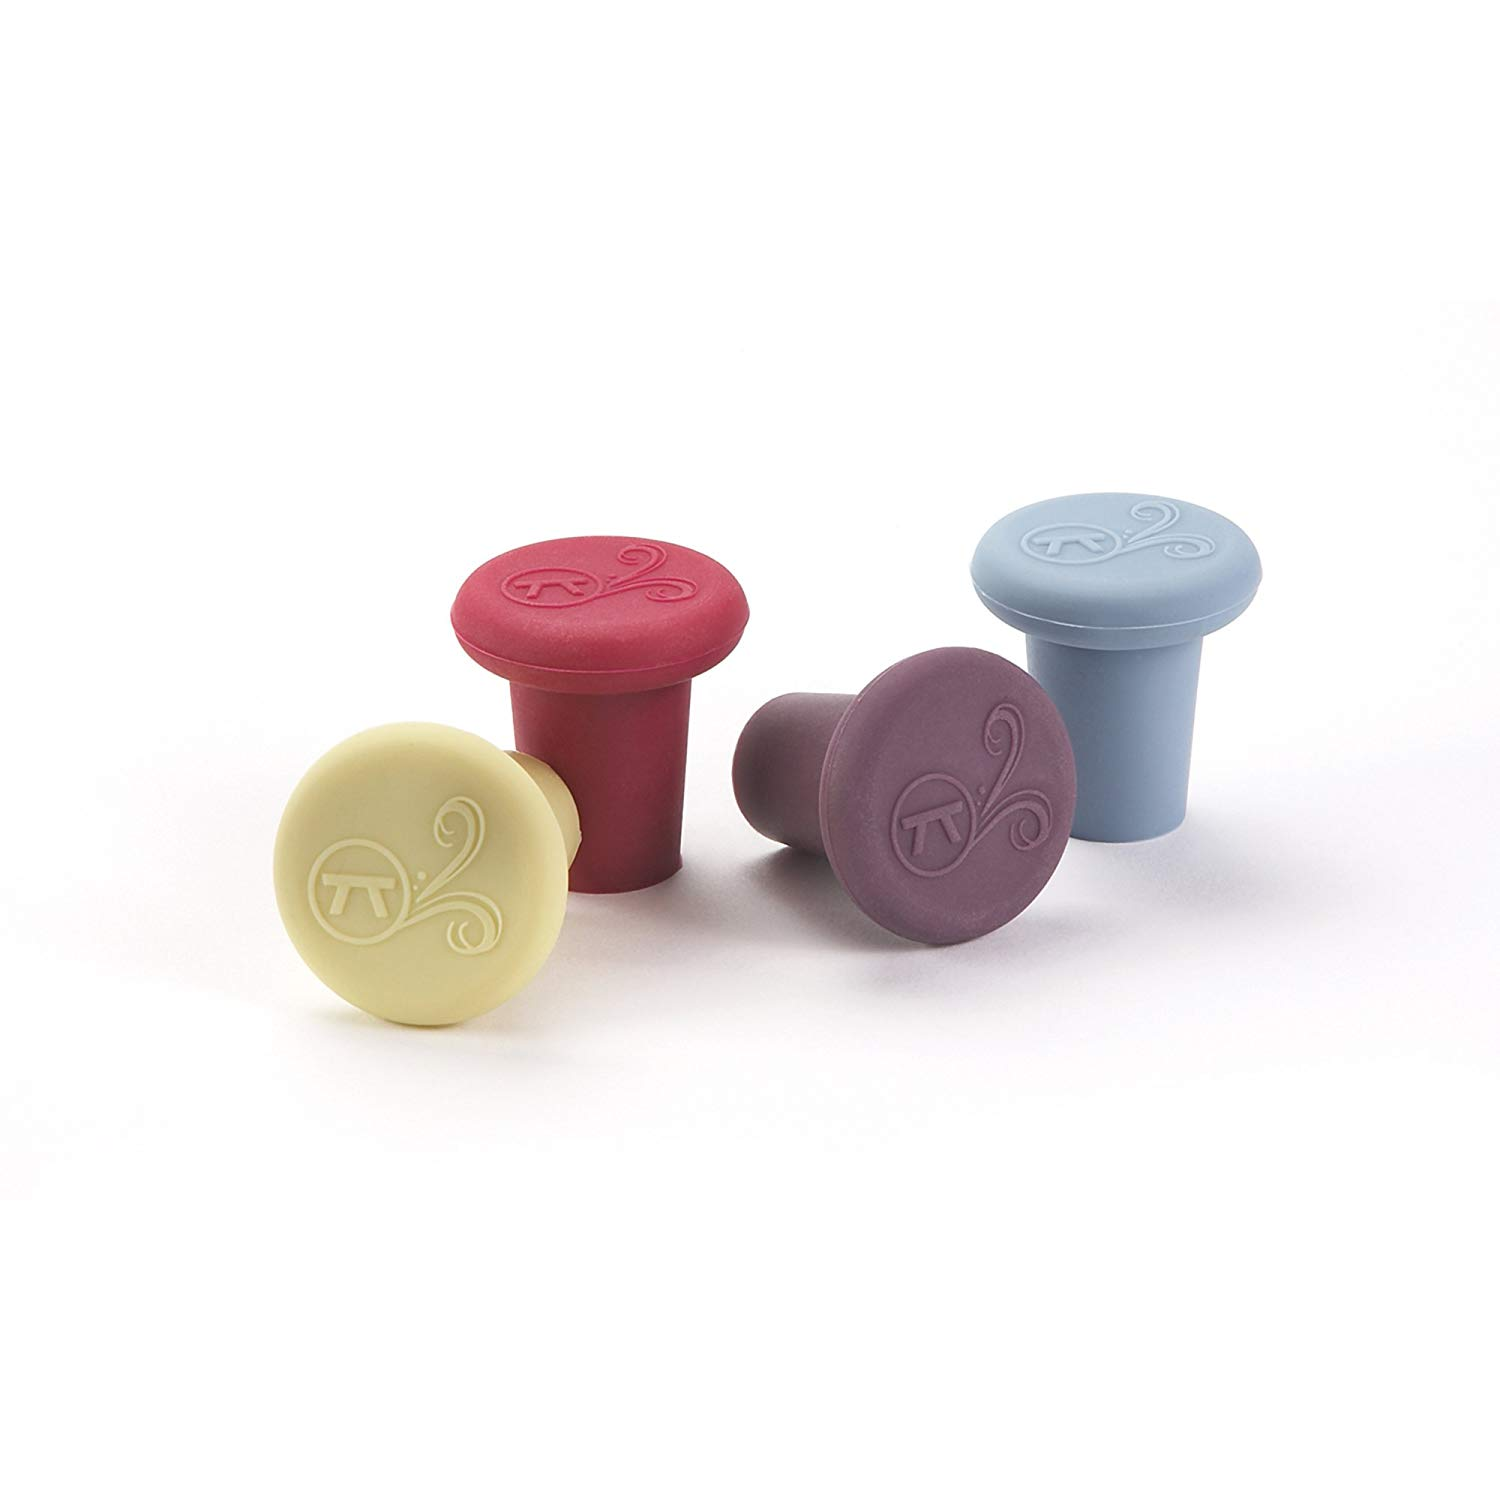 Outset silicone wine bottle stoppers